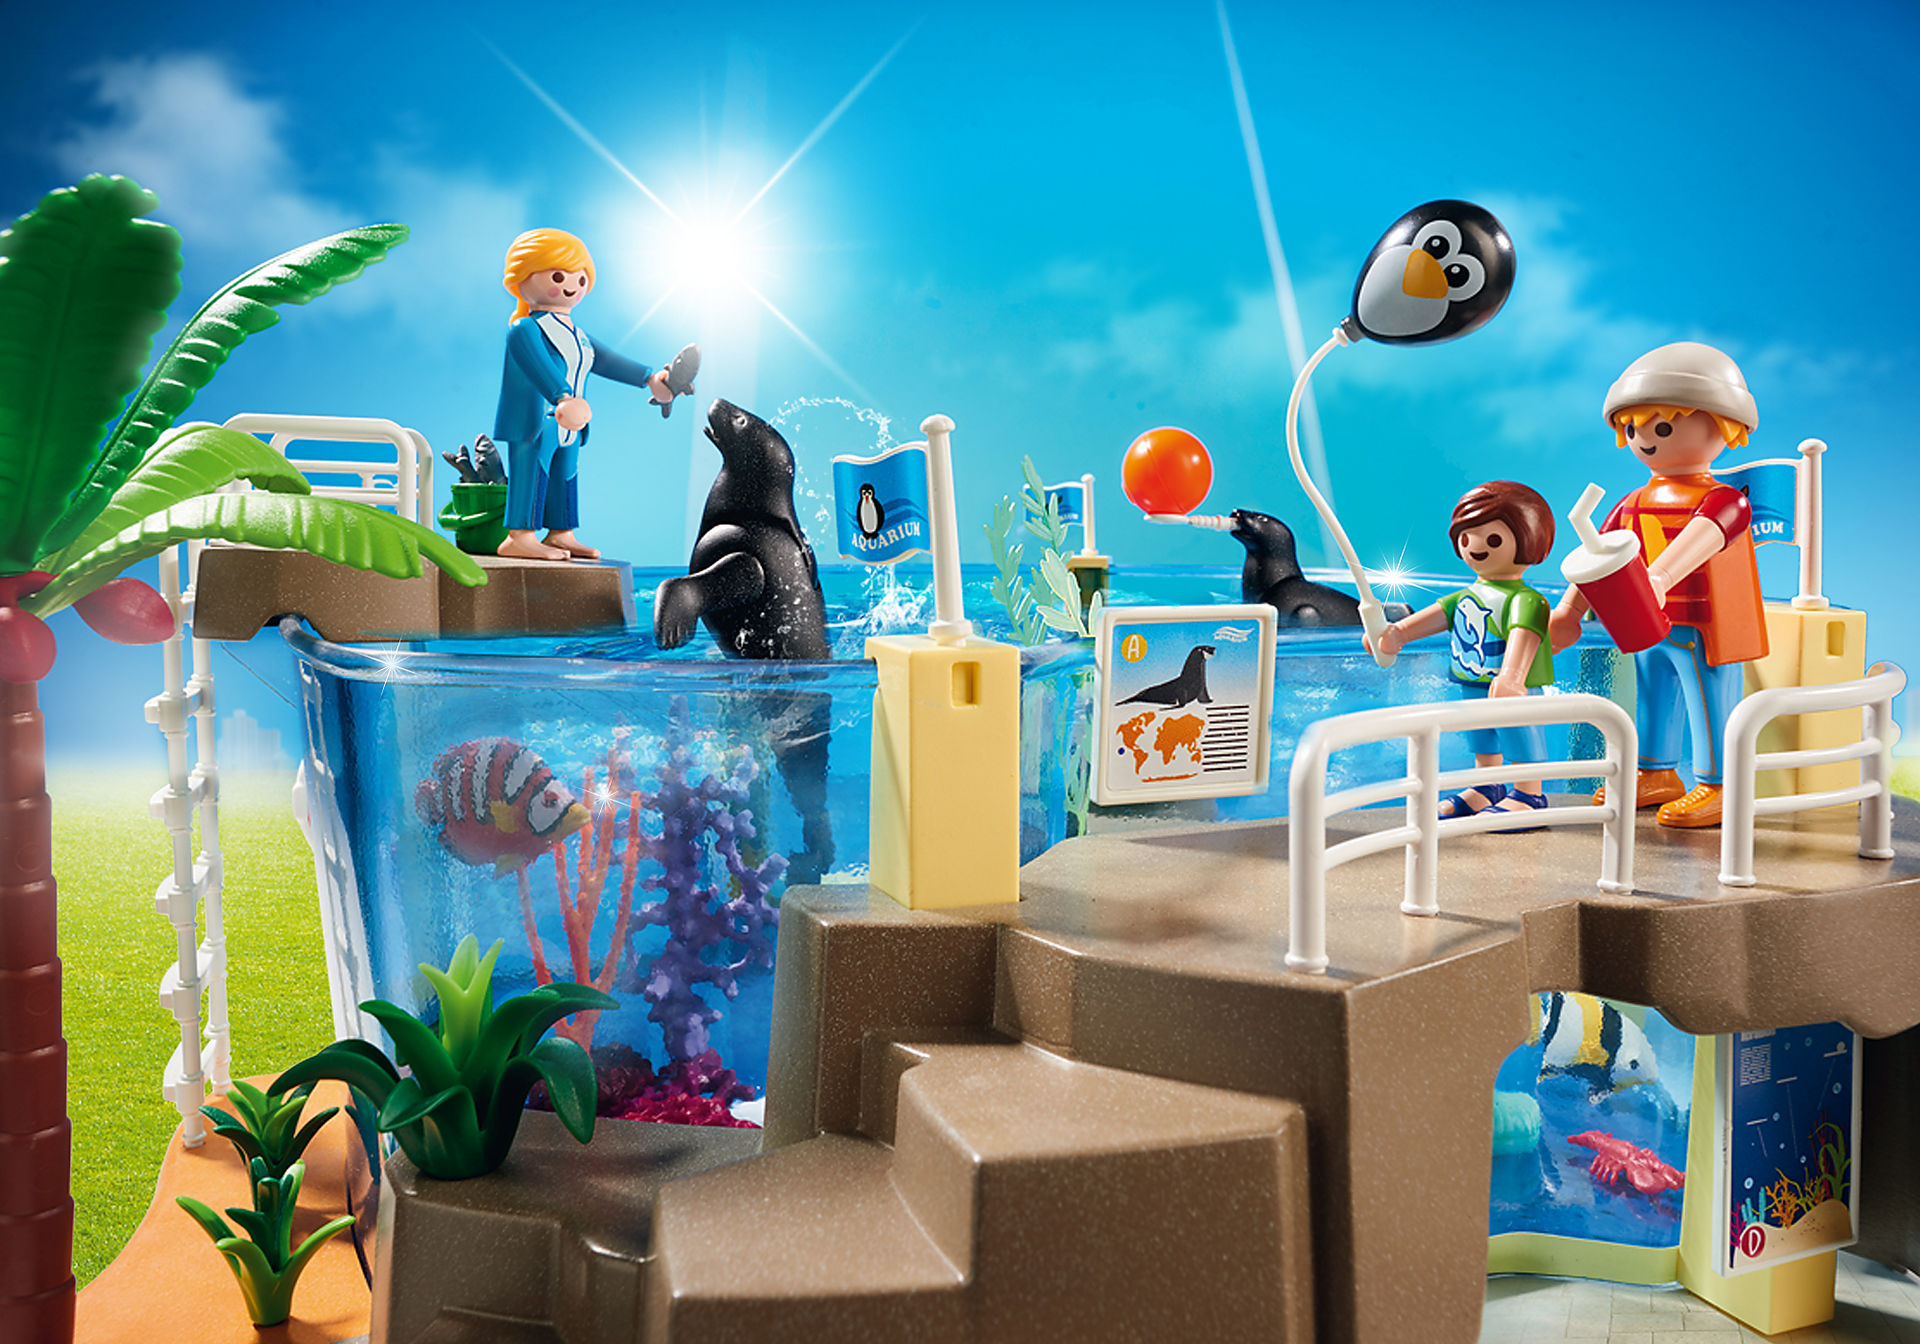 http://media.playmobil.com/i/playmobil/9060_product_extra1/Μεγάλο Ενυδρείο